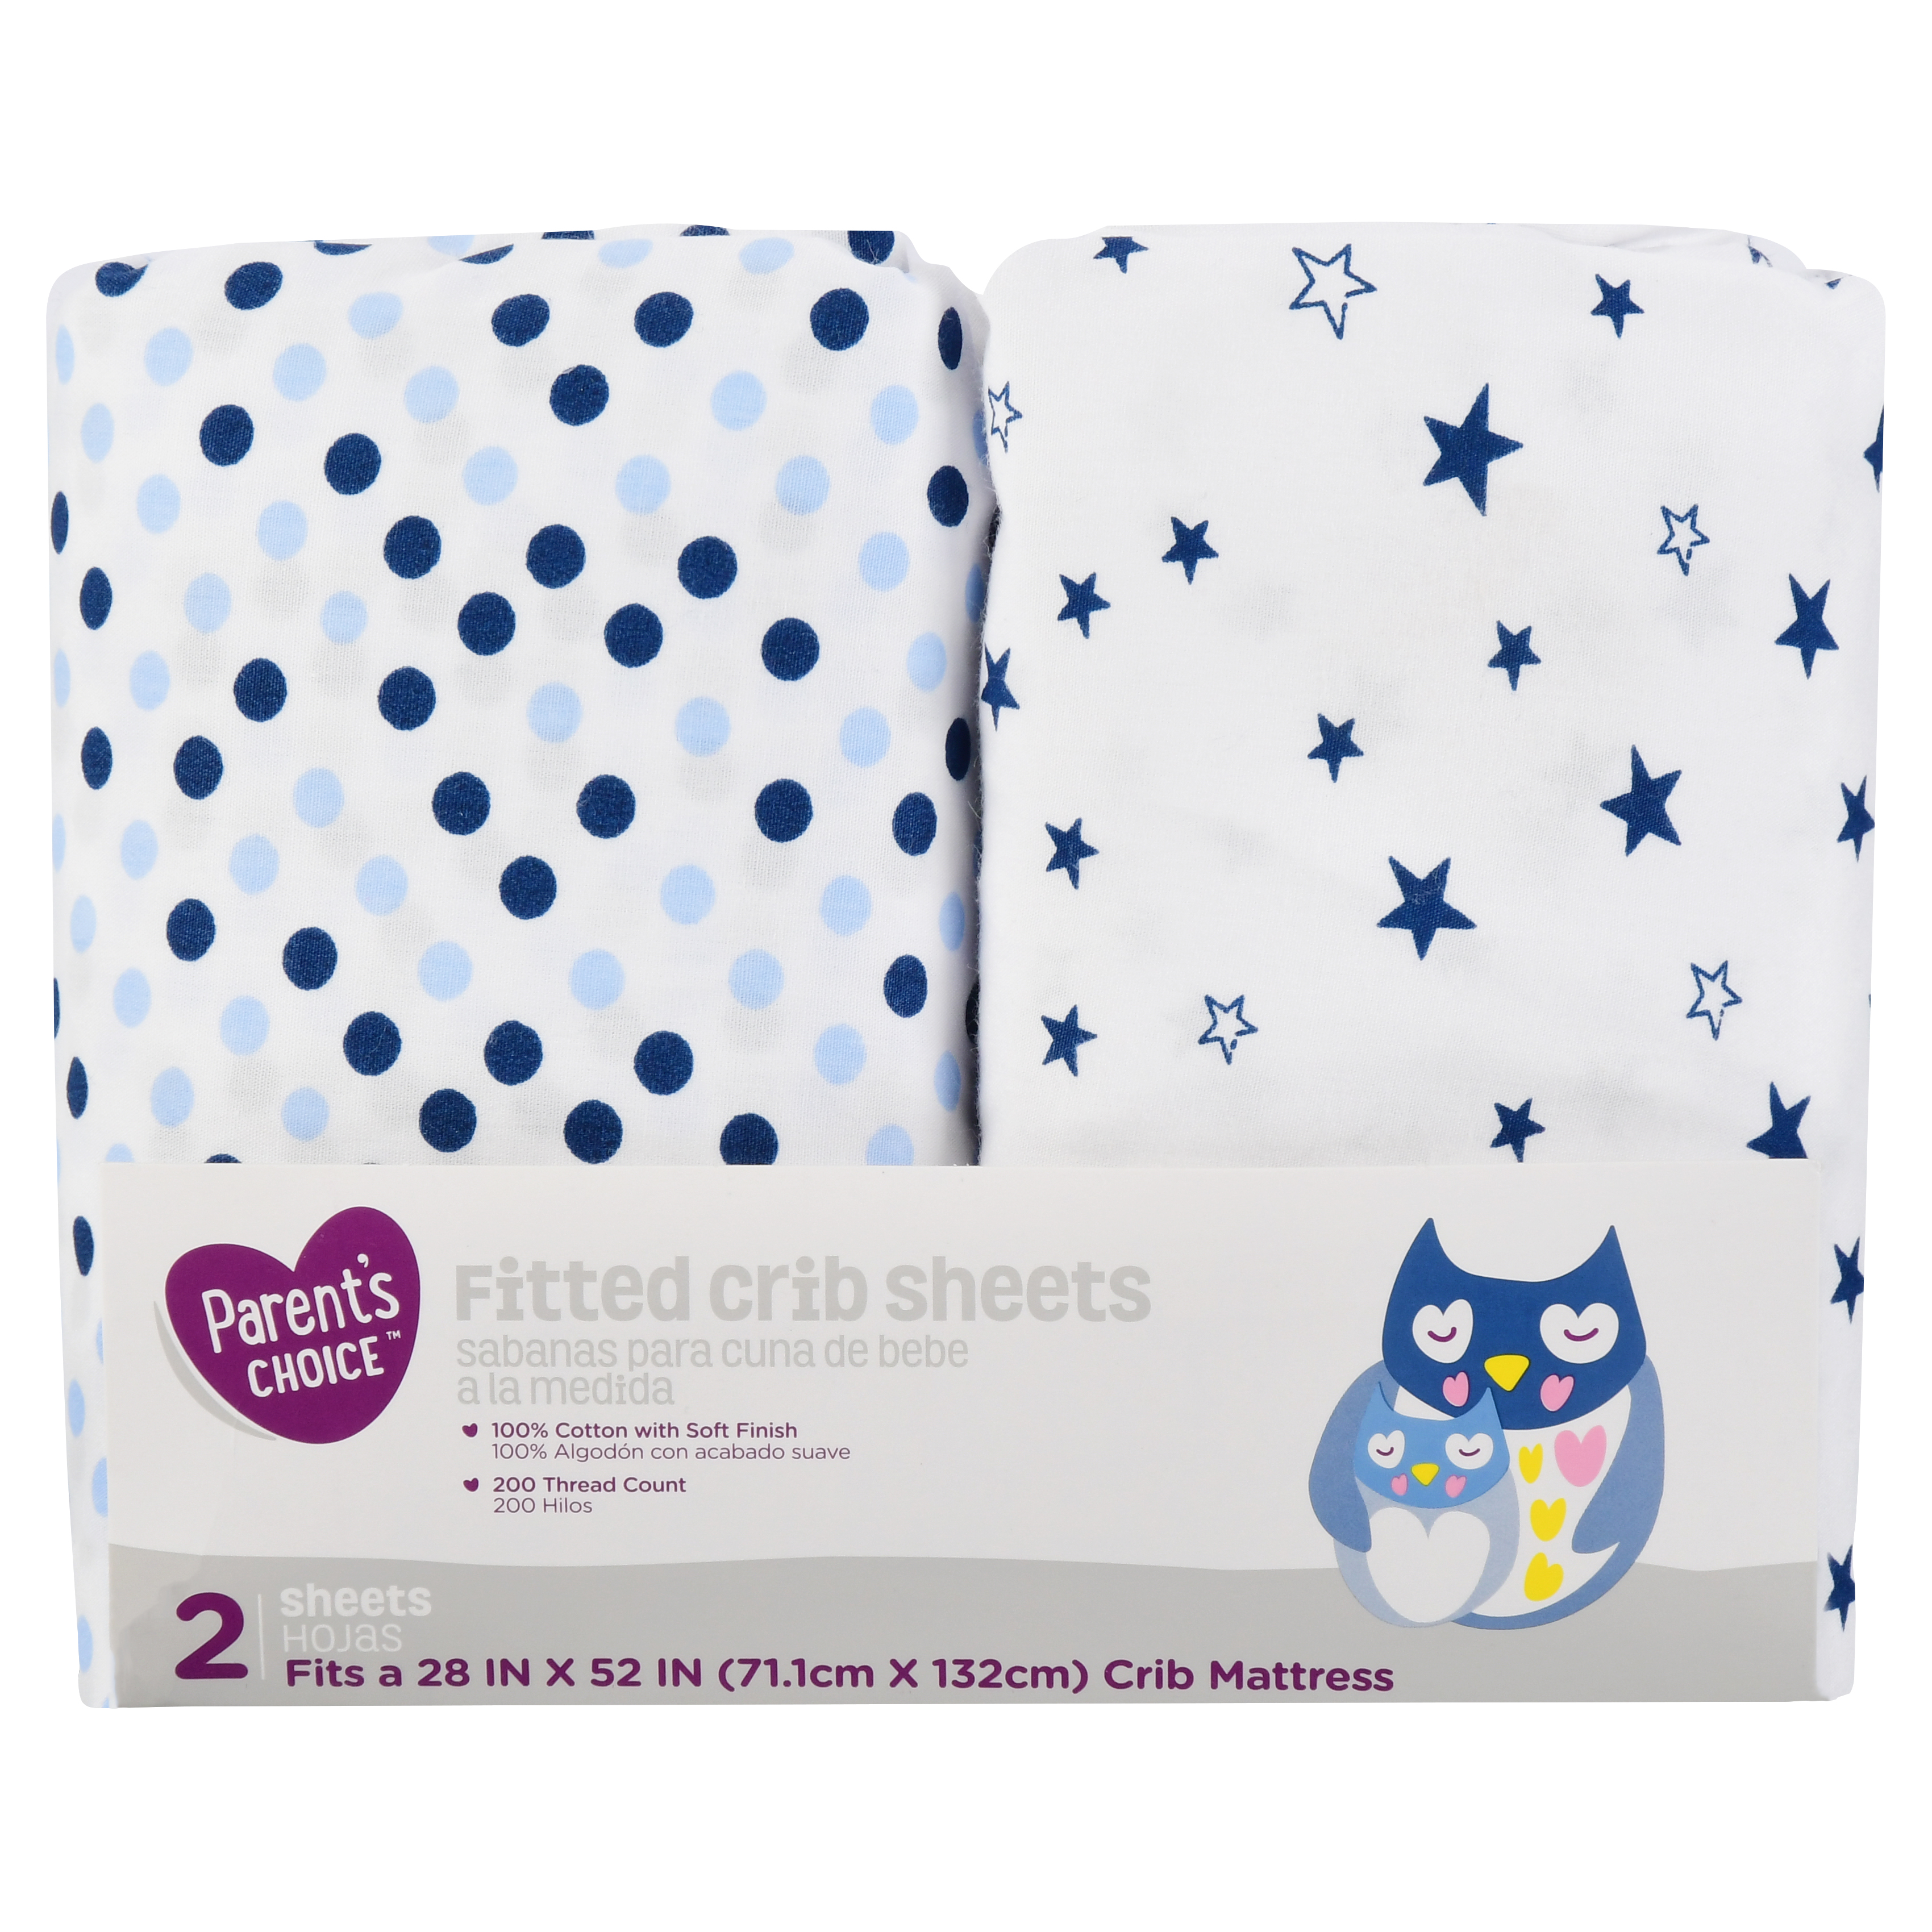 Parent's Choice Fitted Crib Sheets, Blue Star Print, 2 Pack